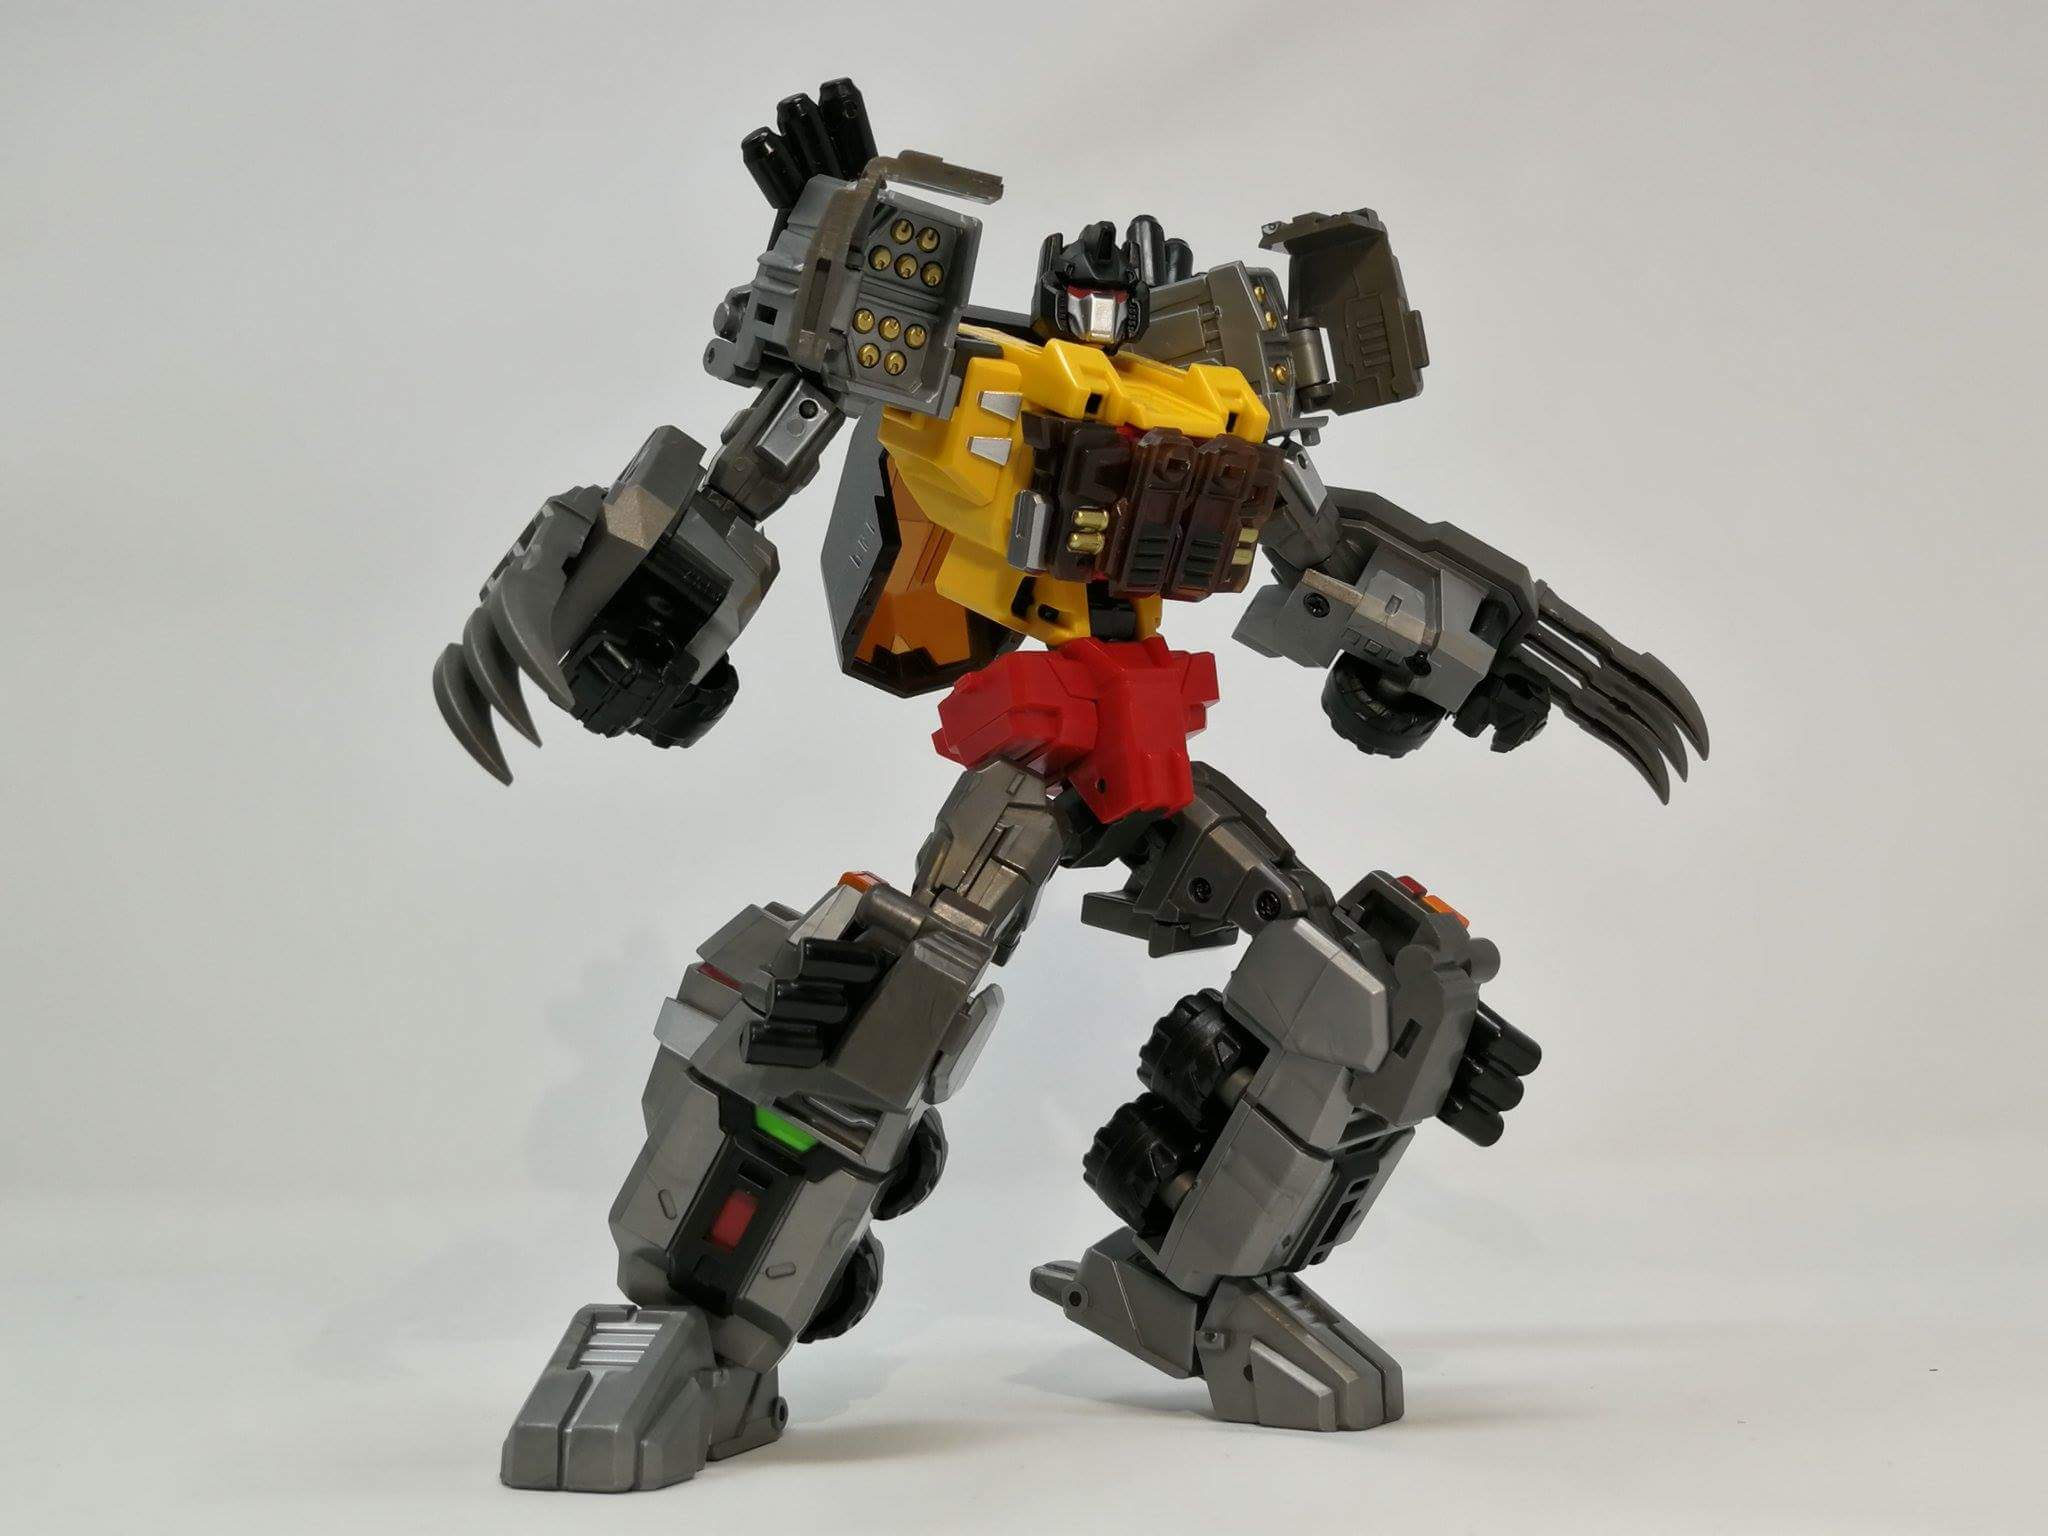 [FansProject] Produit Tiers - Jouets LER (Lost Exo Realm) - aka Dinobots - Page 4 YoCohoHn_o